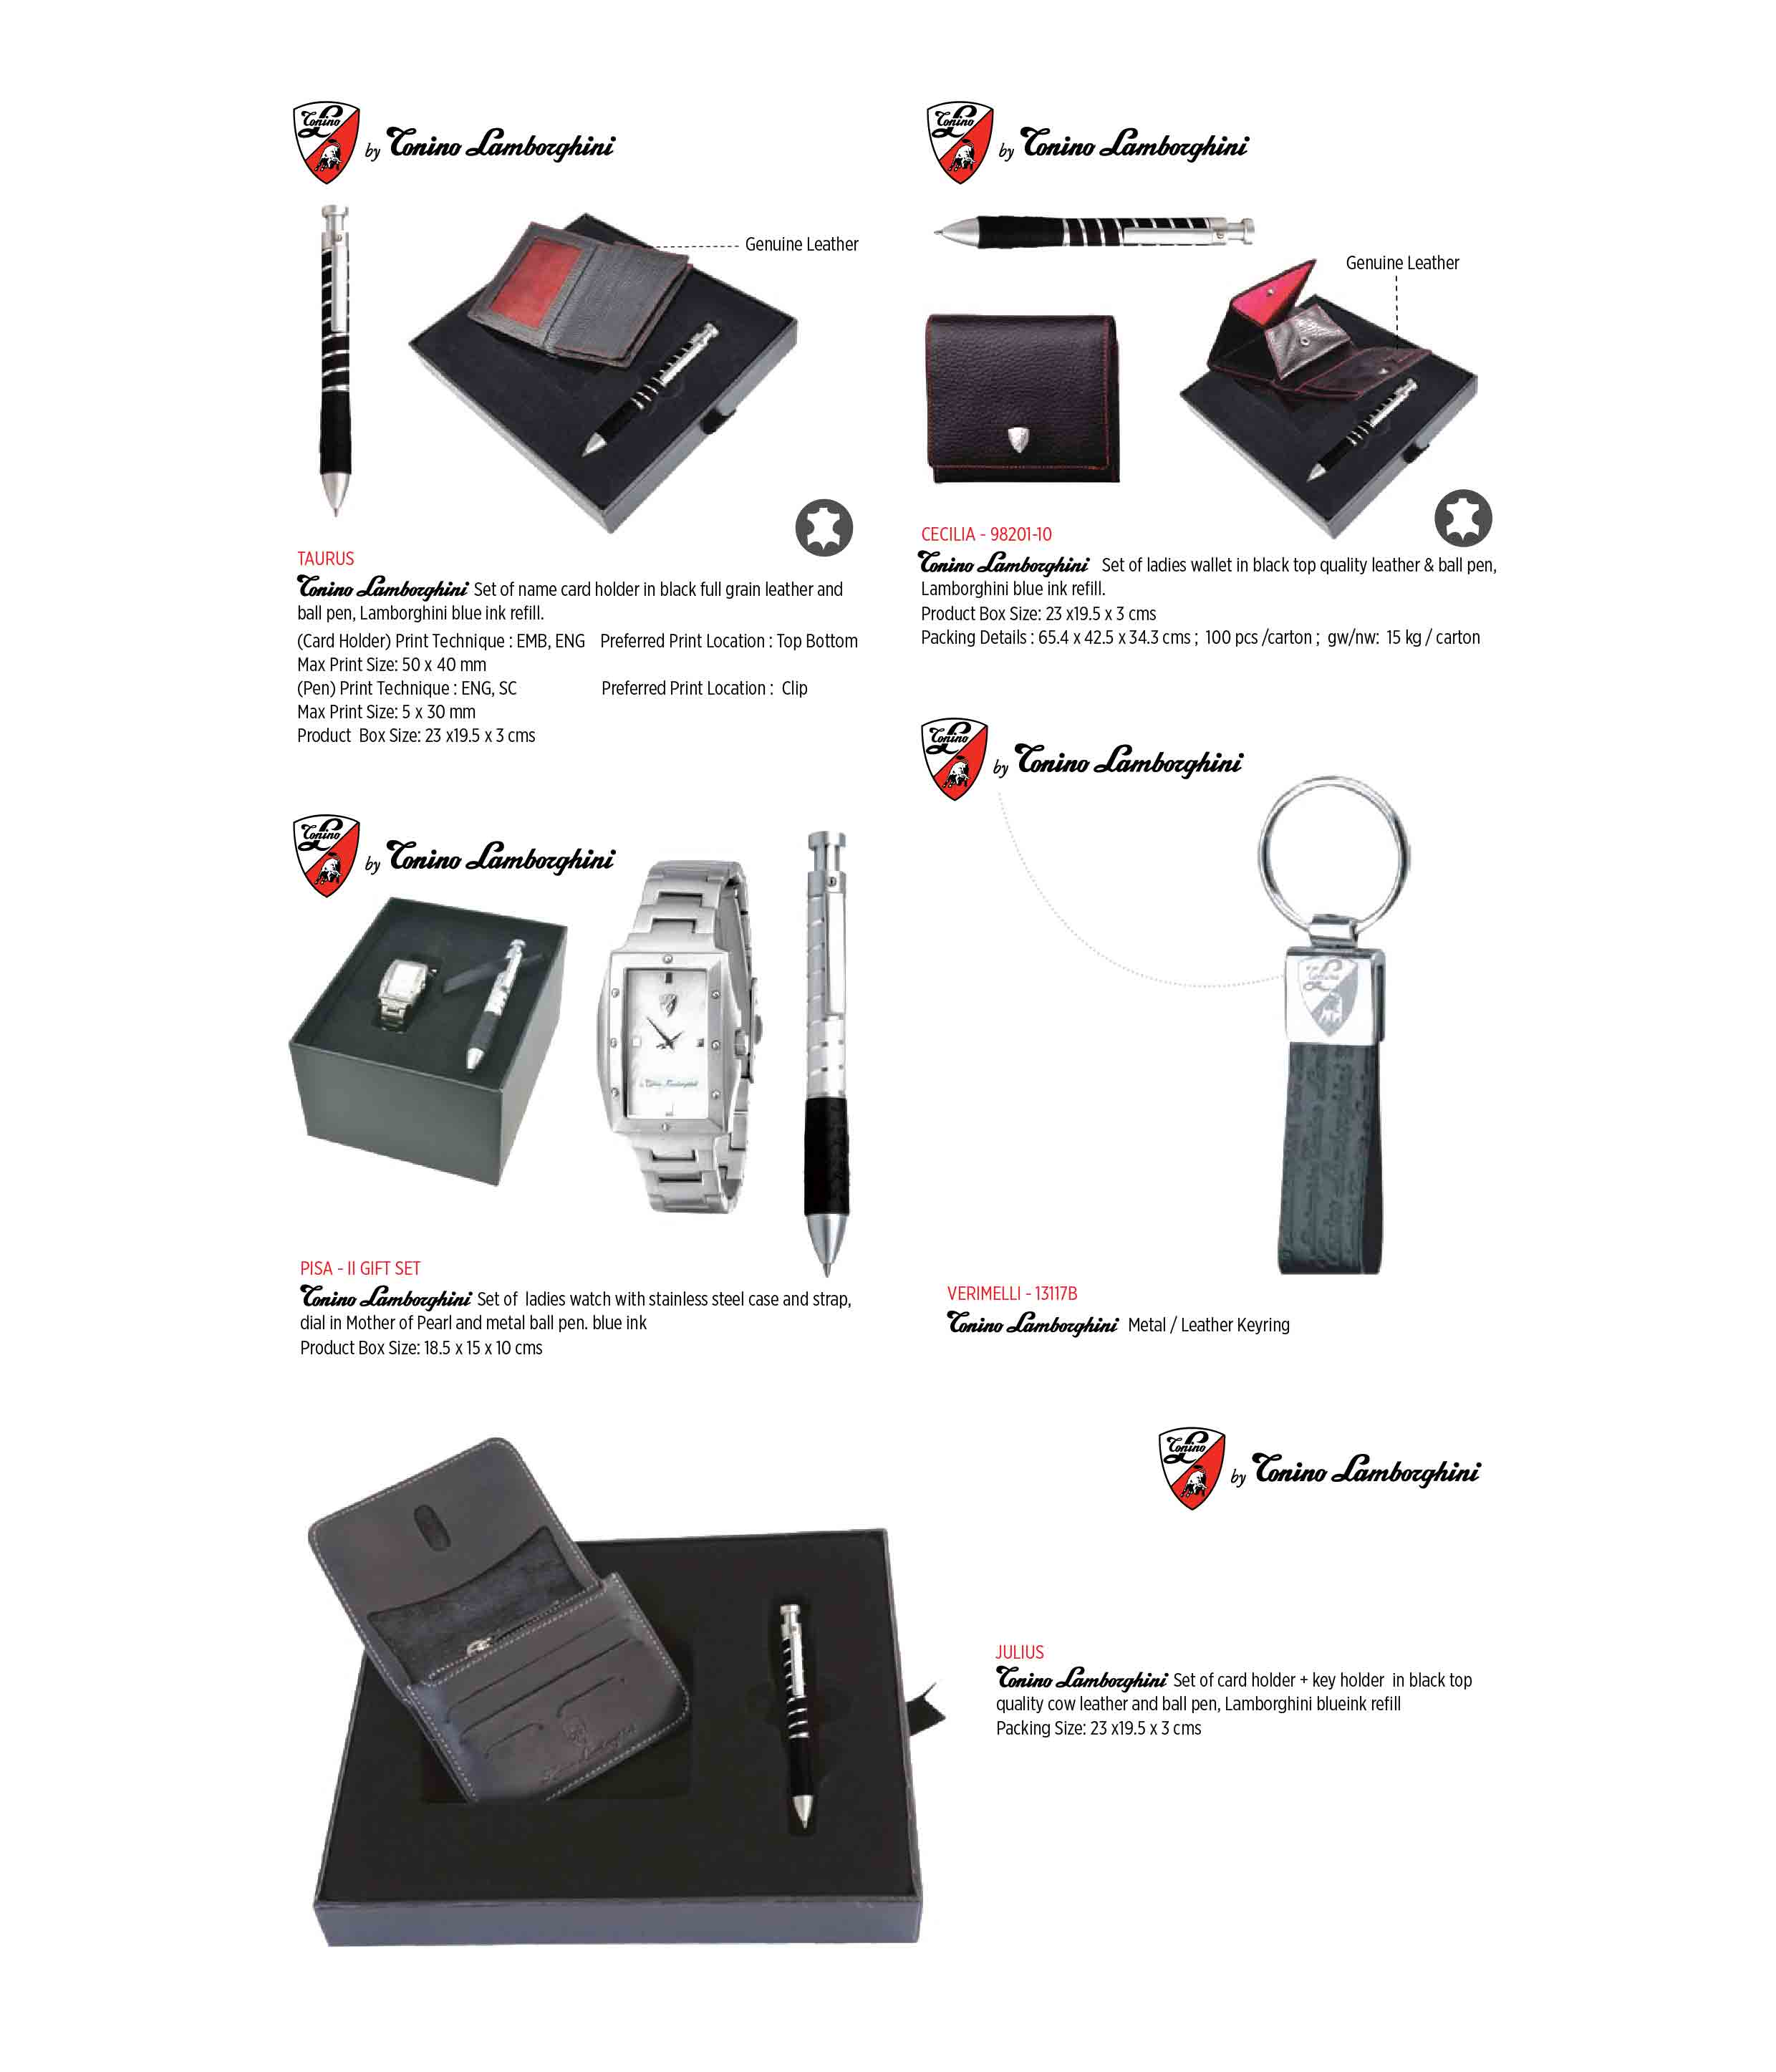 PRIMIA Gifts Corporate gifts & premiums collection_26